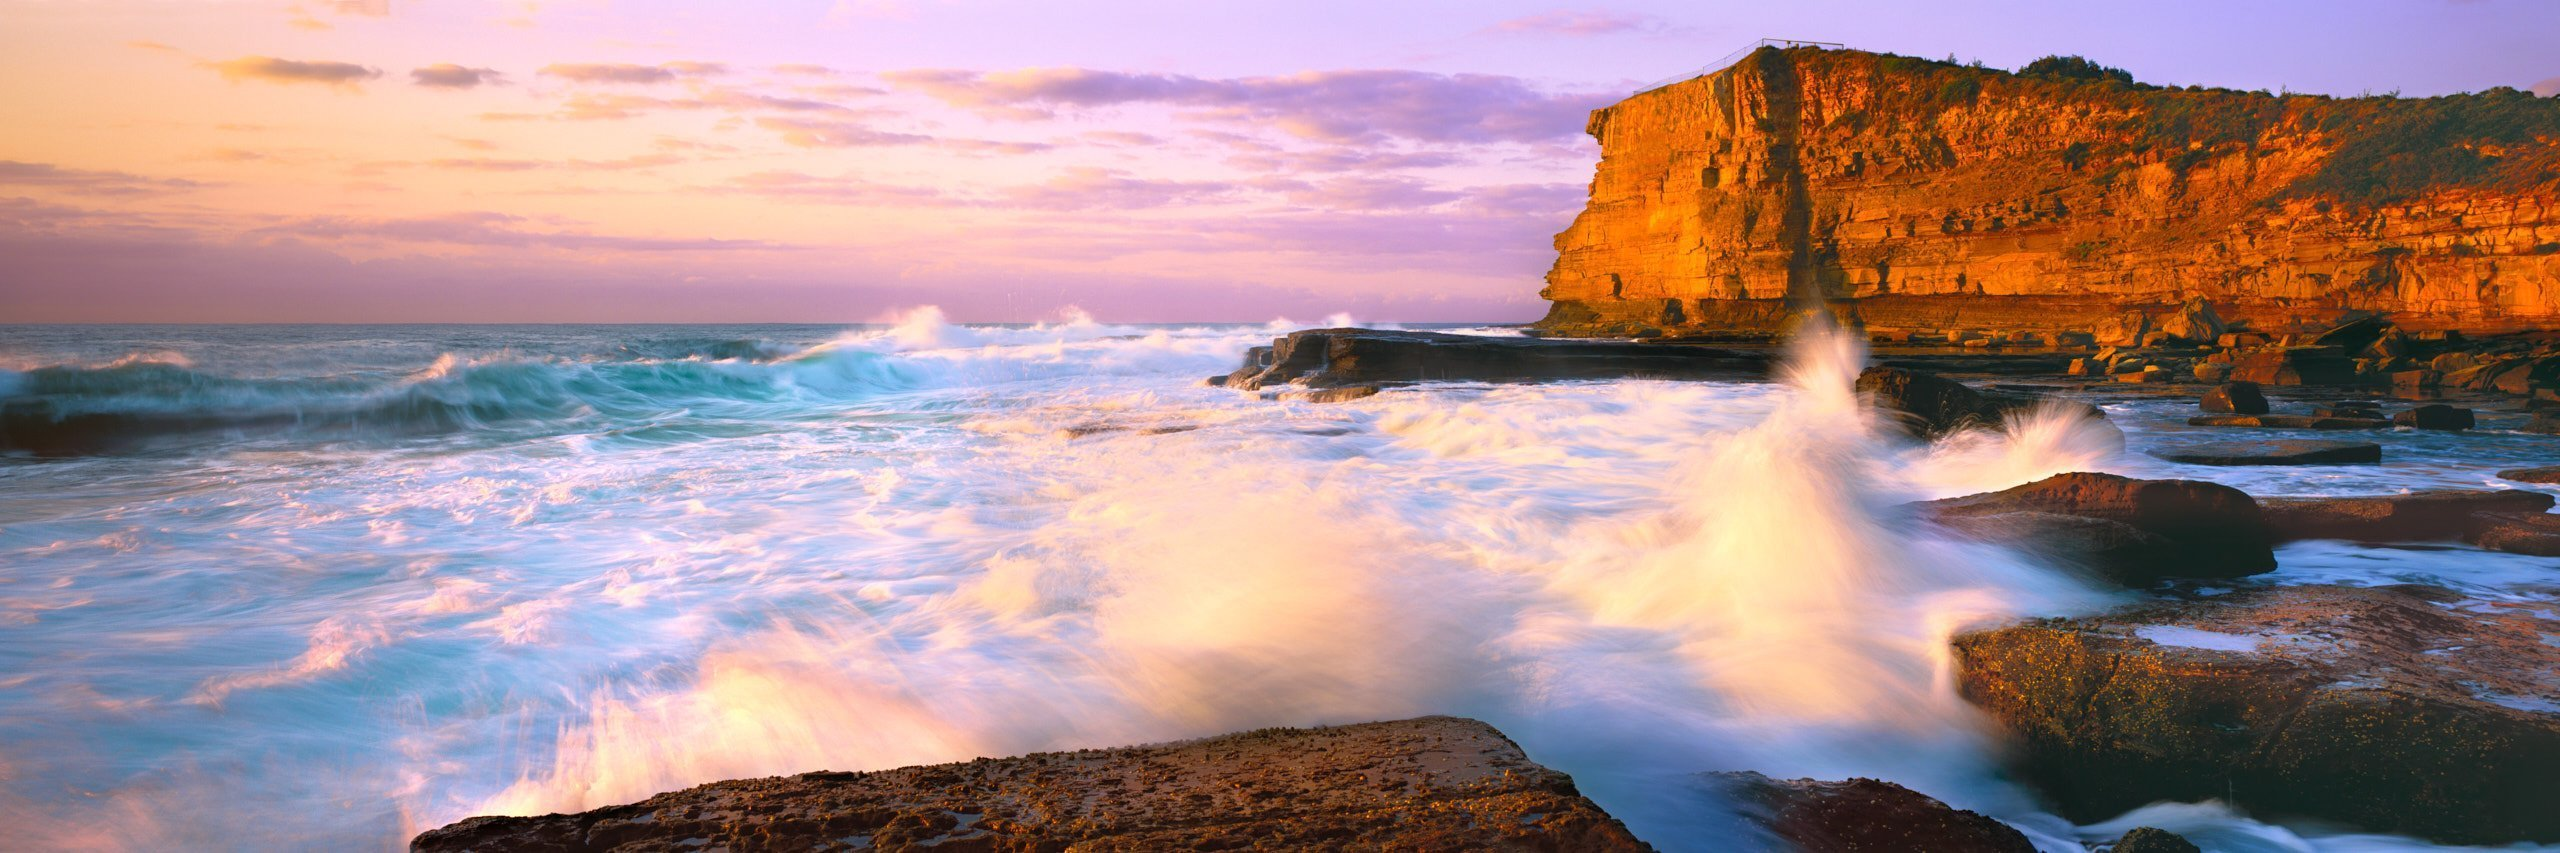 The Skillion Terrigal with waves crashing and the sun lighting up the rock face